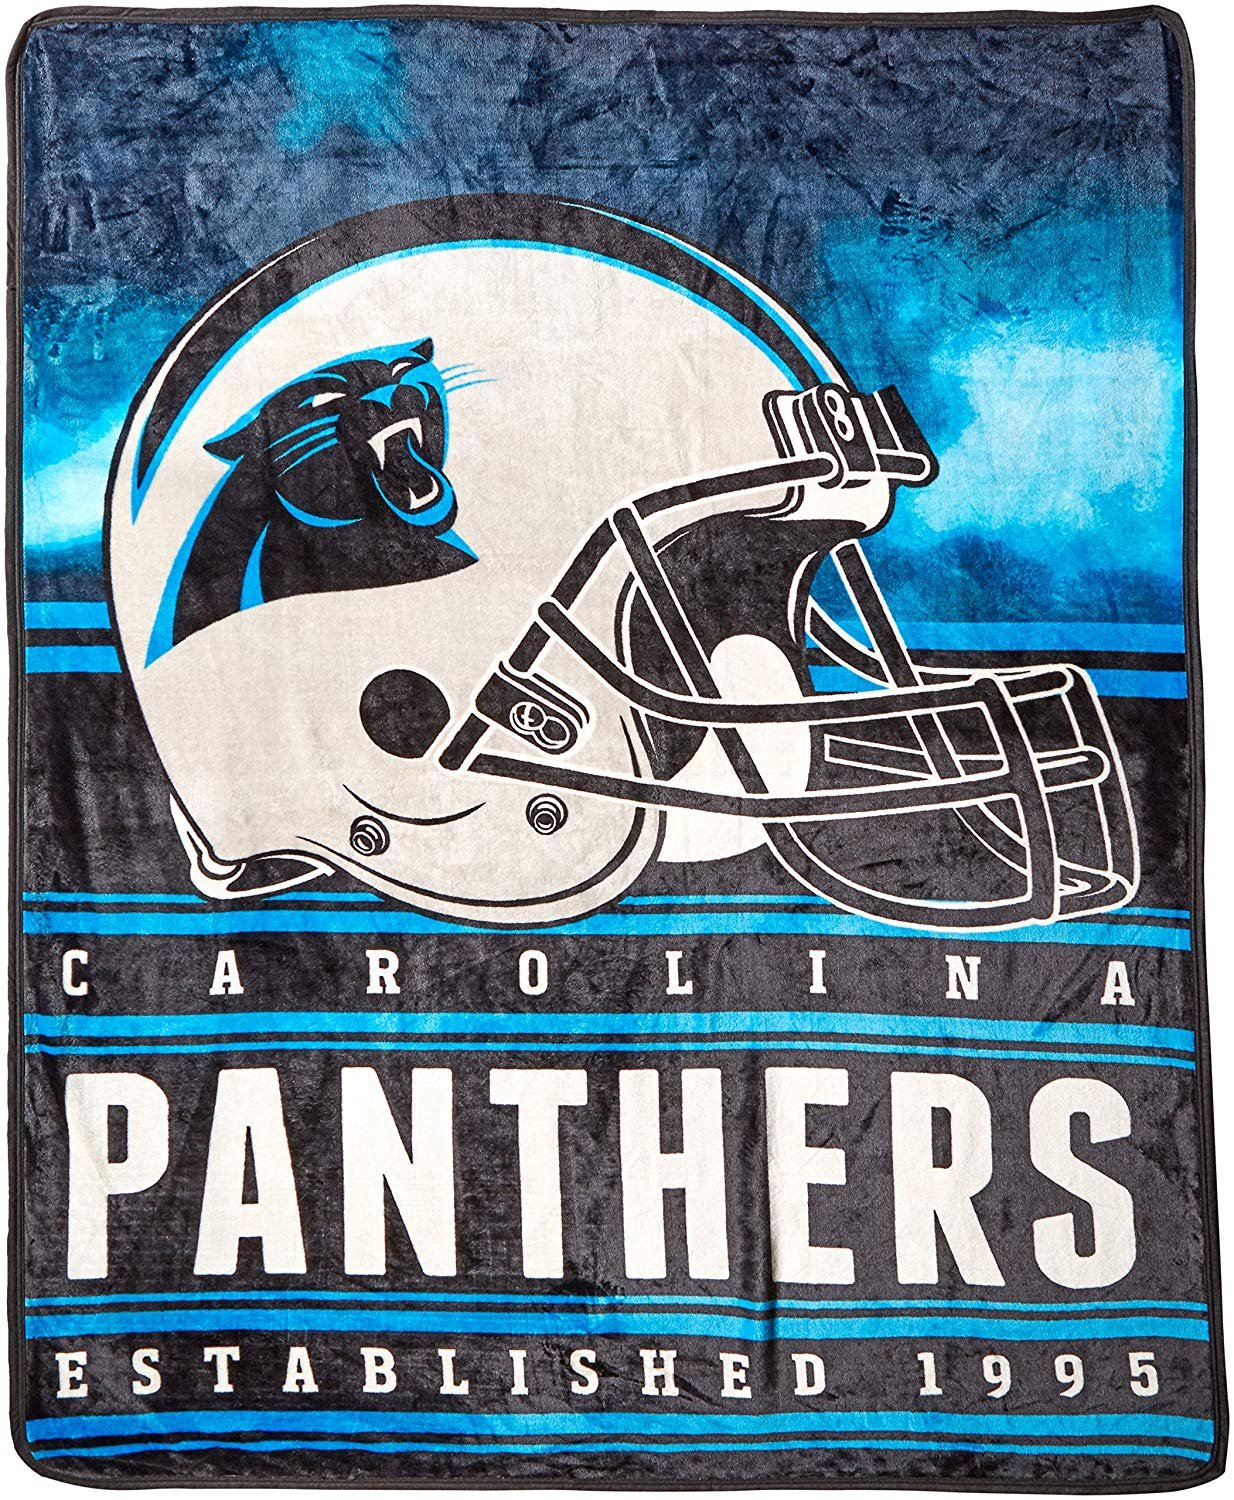 55e849a4 The Northwest Company Officially Licensed NFL Carolina Panthers Stacked  Silk Touch Throw Blanket, 60